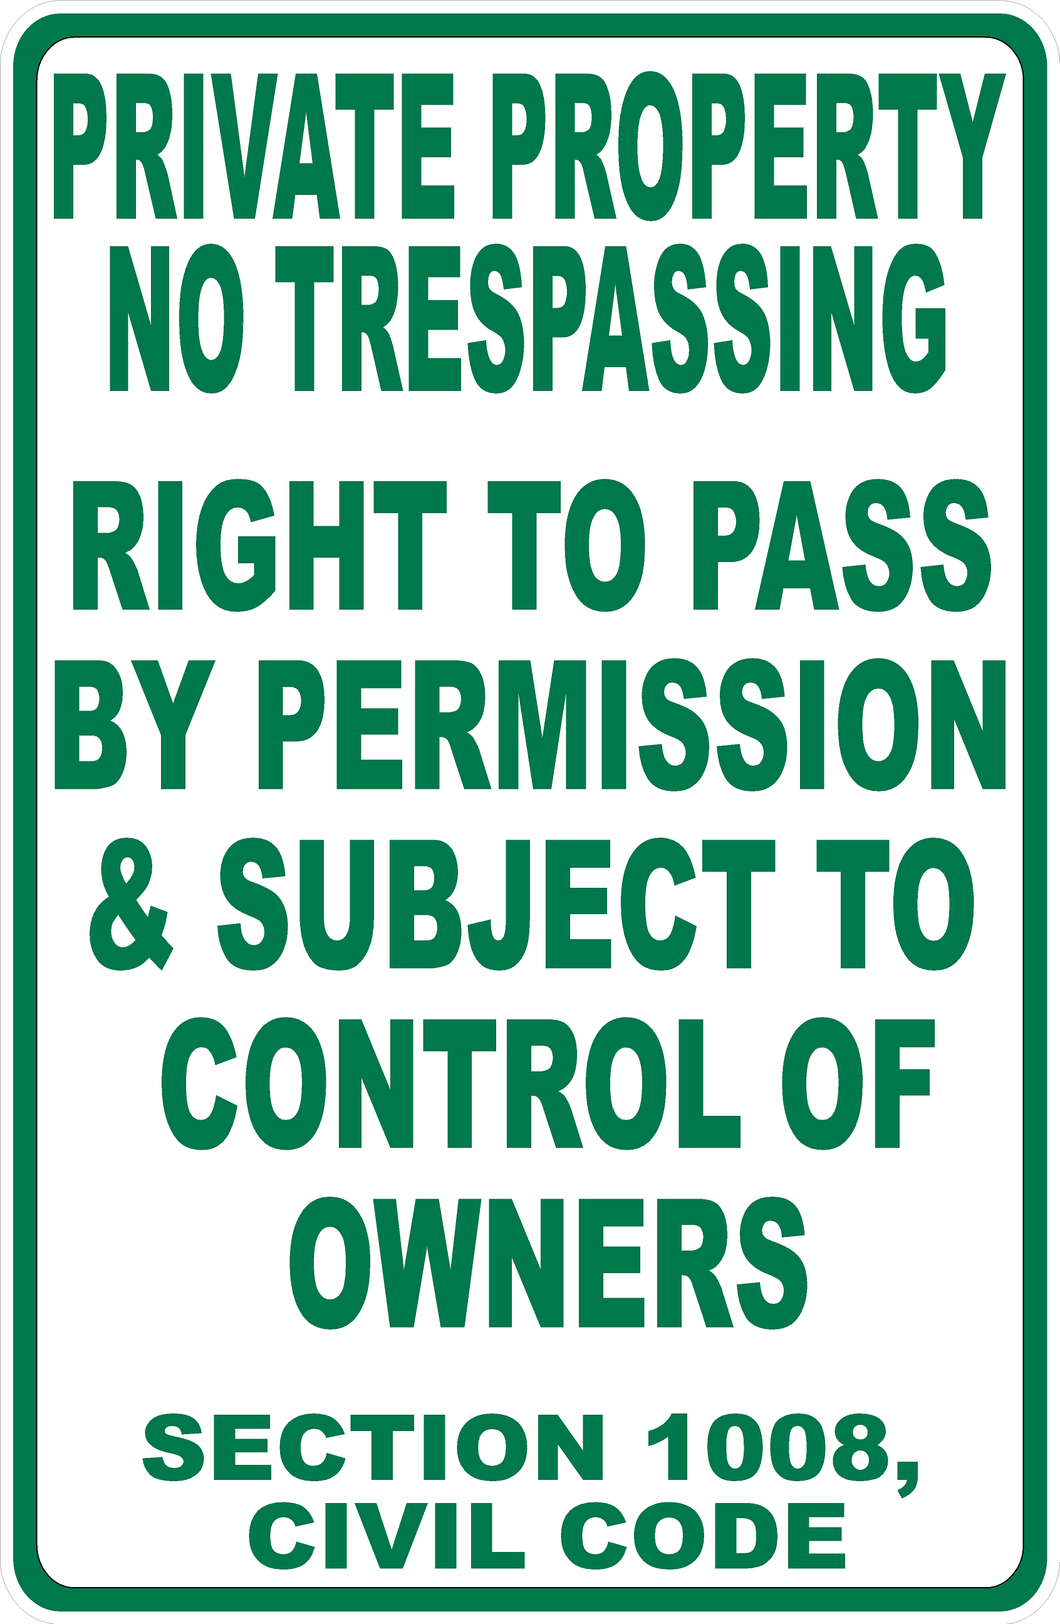 Private Property  No Trespassing Right to Pass by Permission Subject Control of Owners Sign Vertical Version